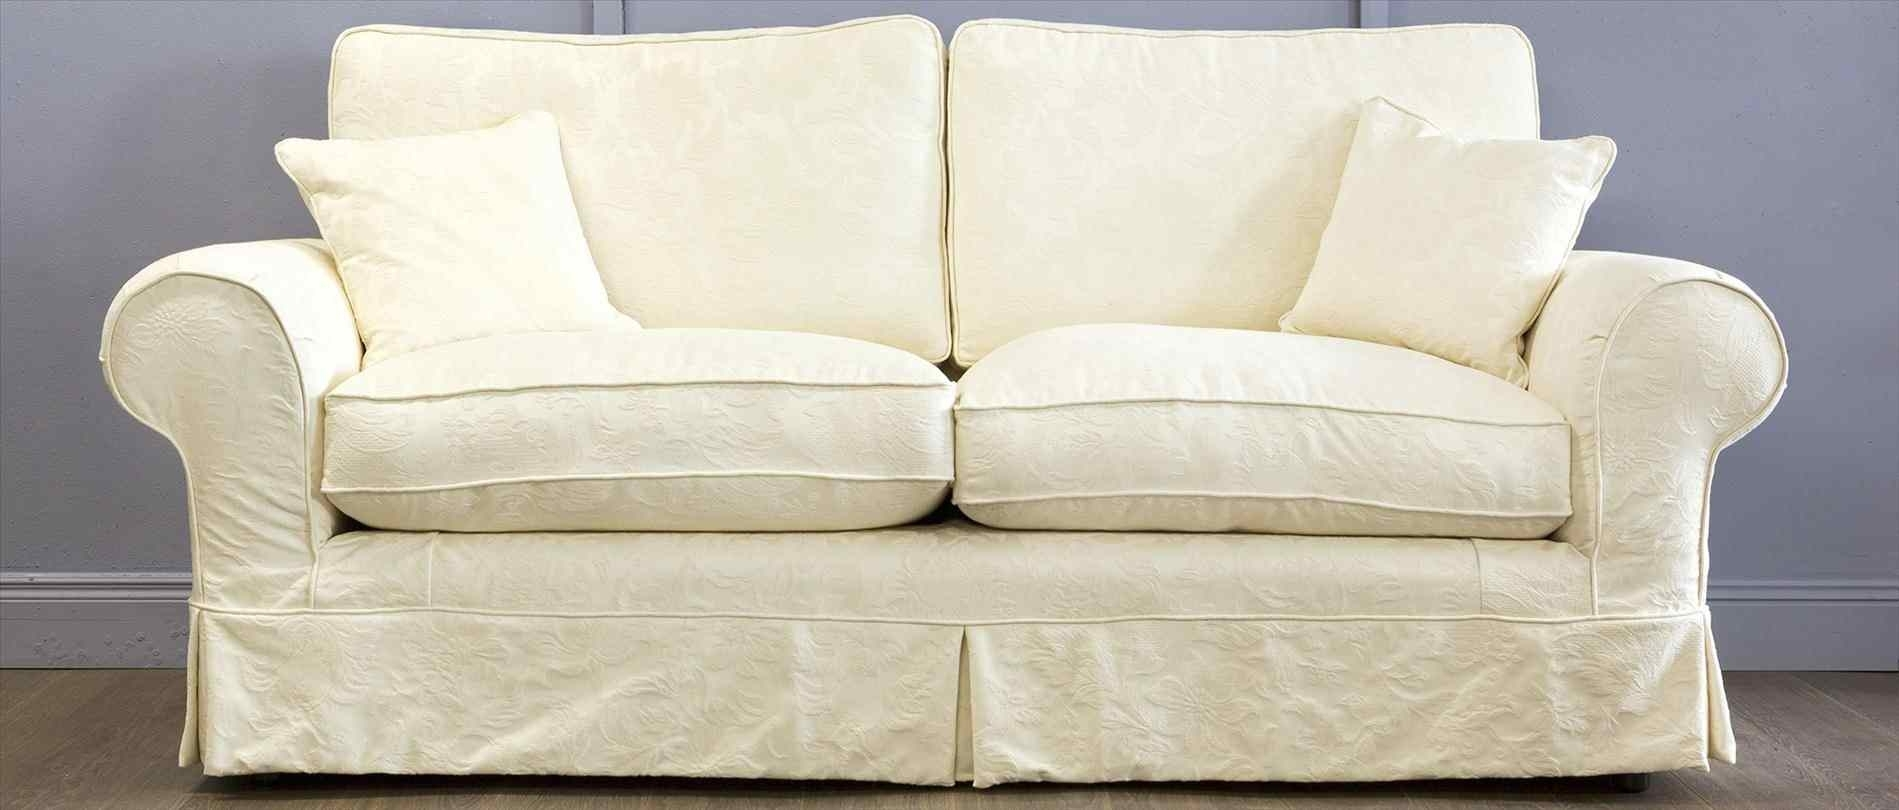 Sofa : Luxurious Sofa With Washable Covers Removable Ideas Amazing Within Sofas With Removable Cover (Gallery 3 of 10)